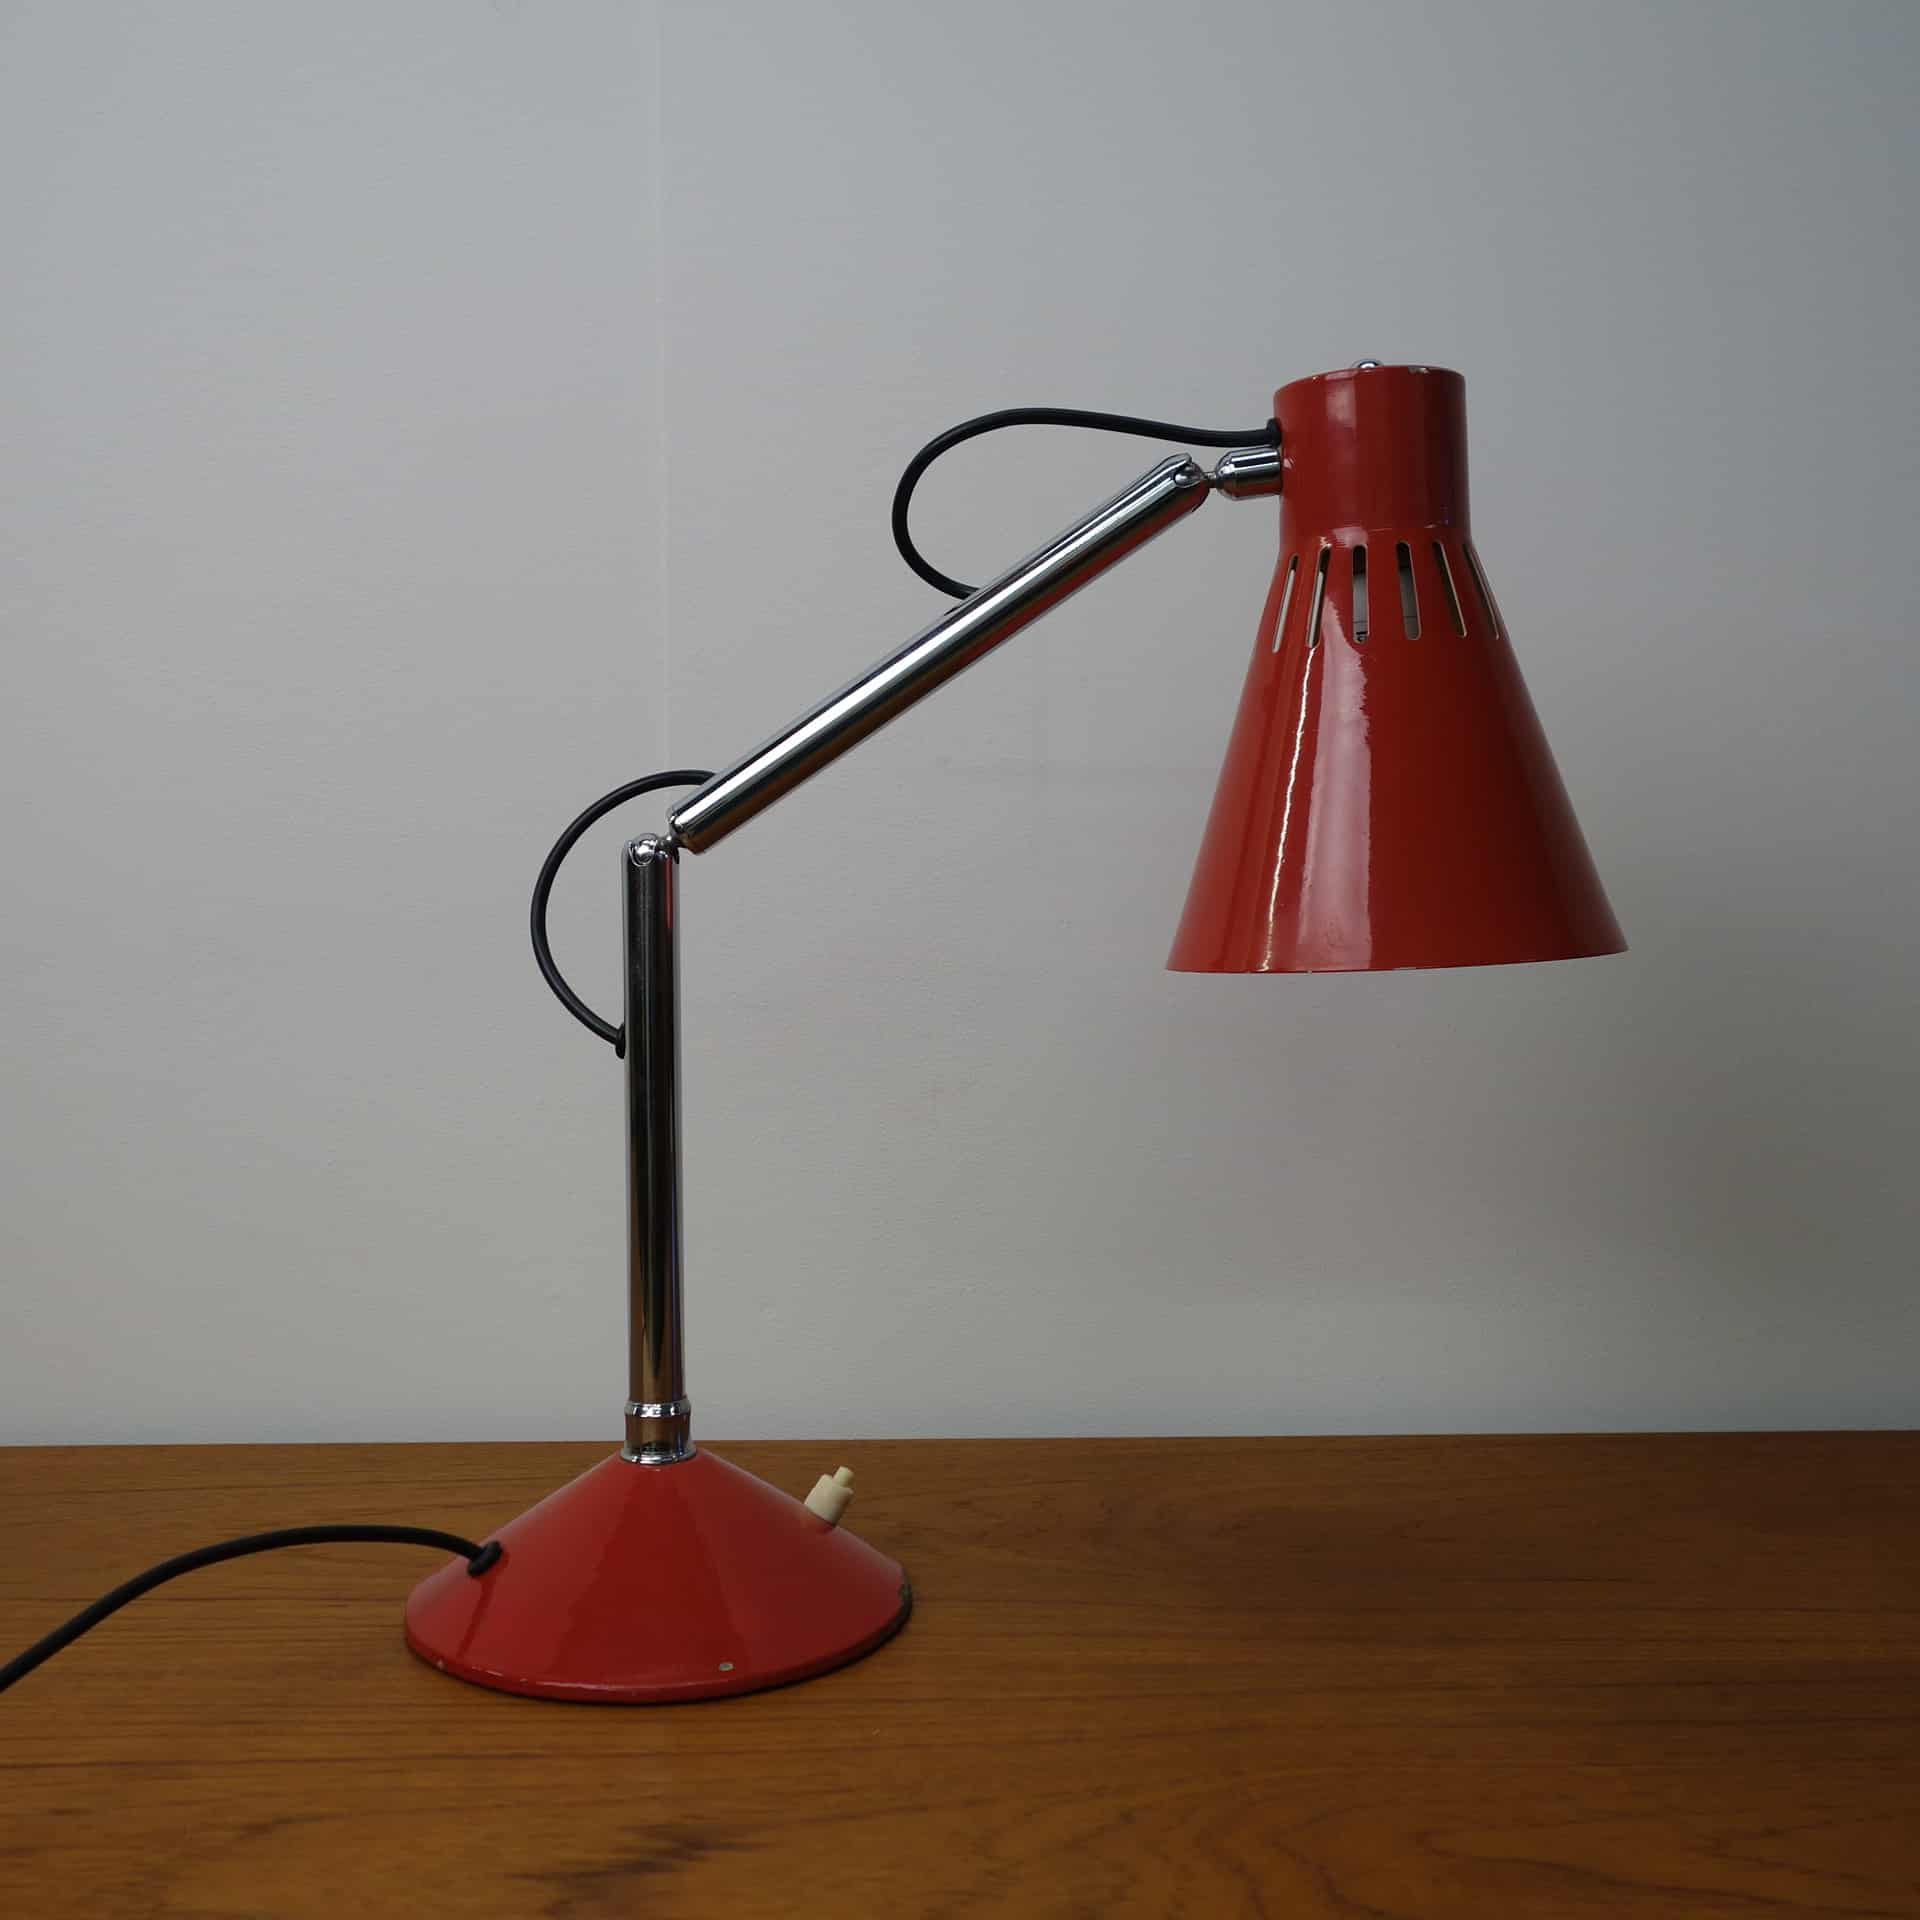 1950s adjustable red desk lamp by Pifco Mark Parrish Mid